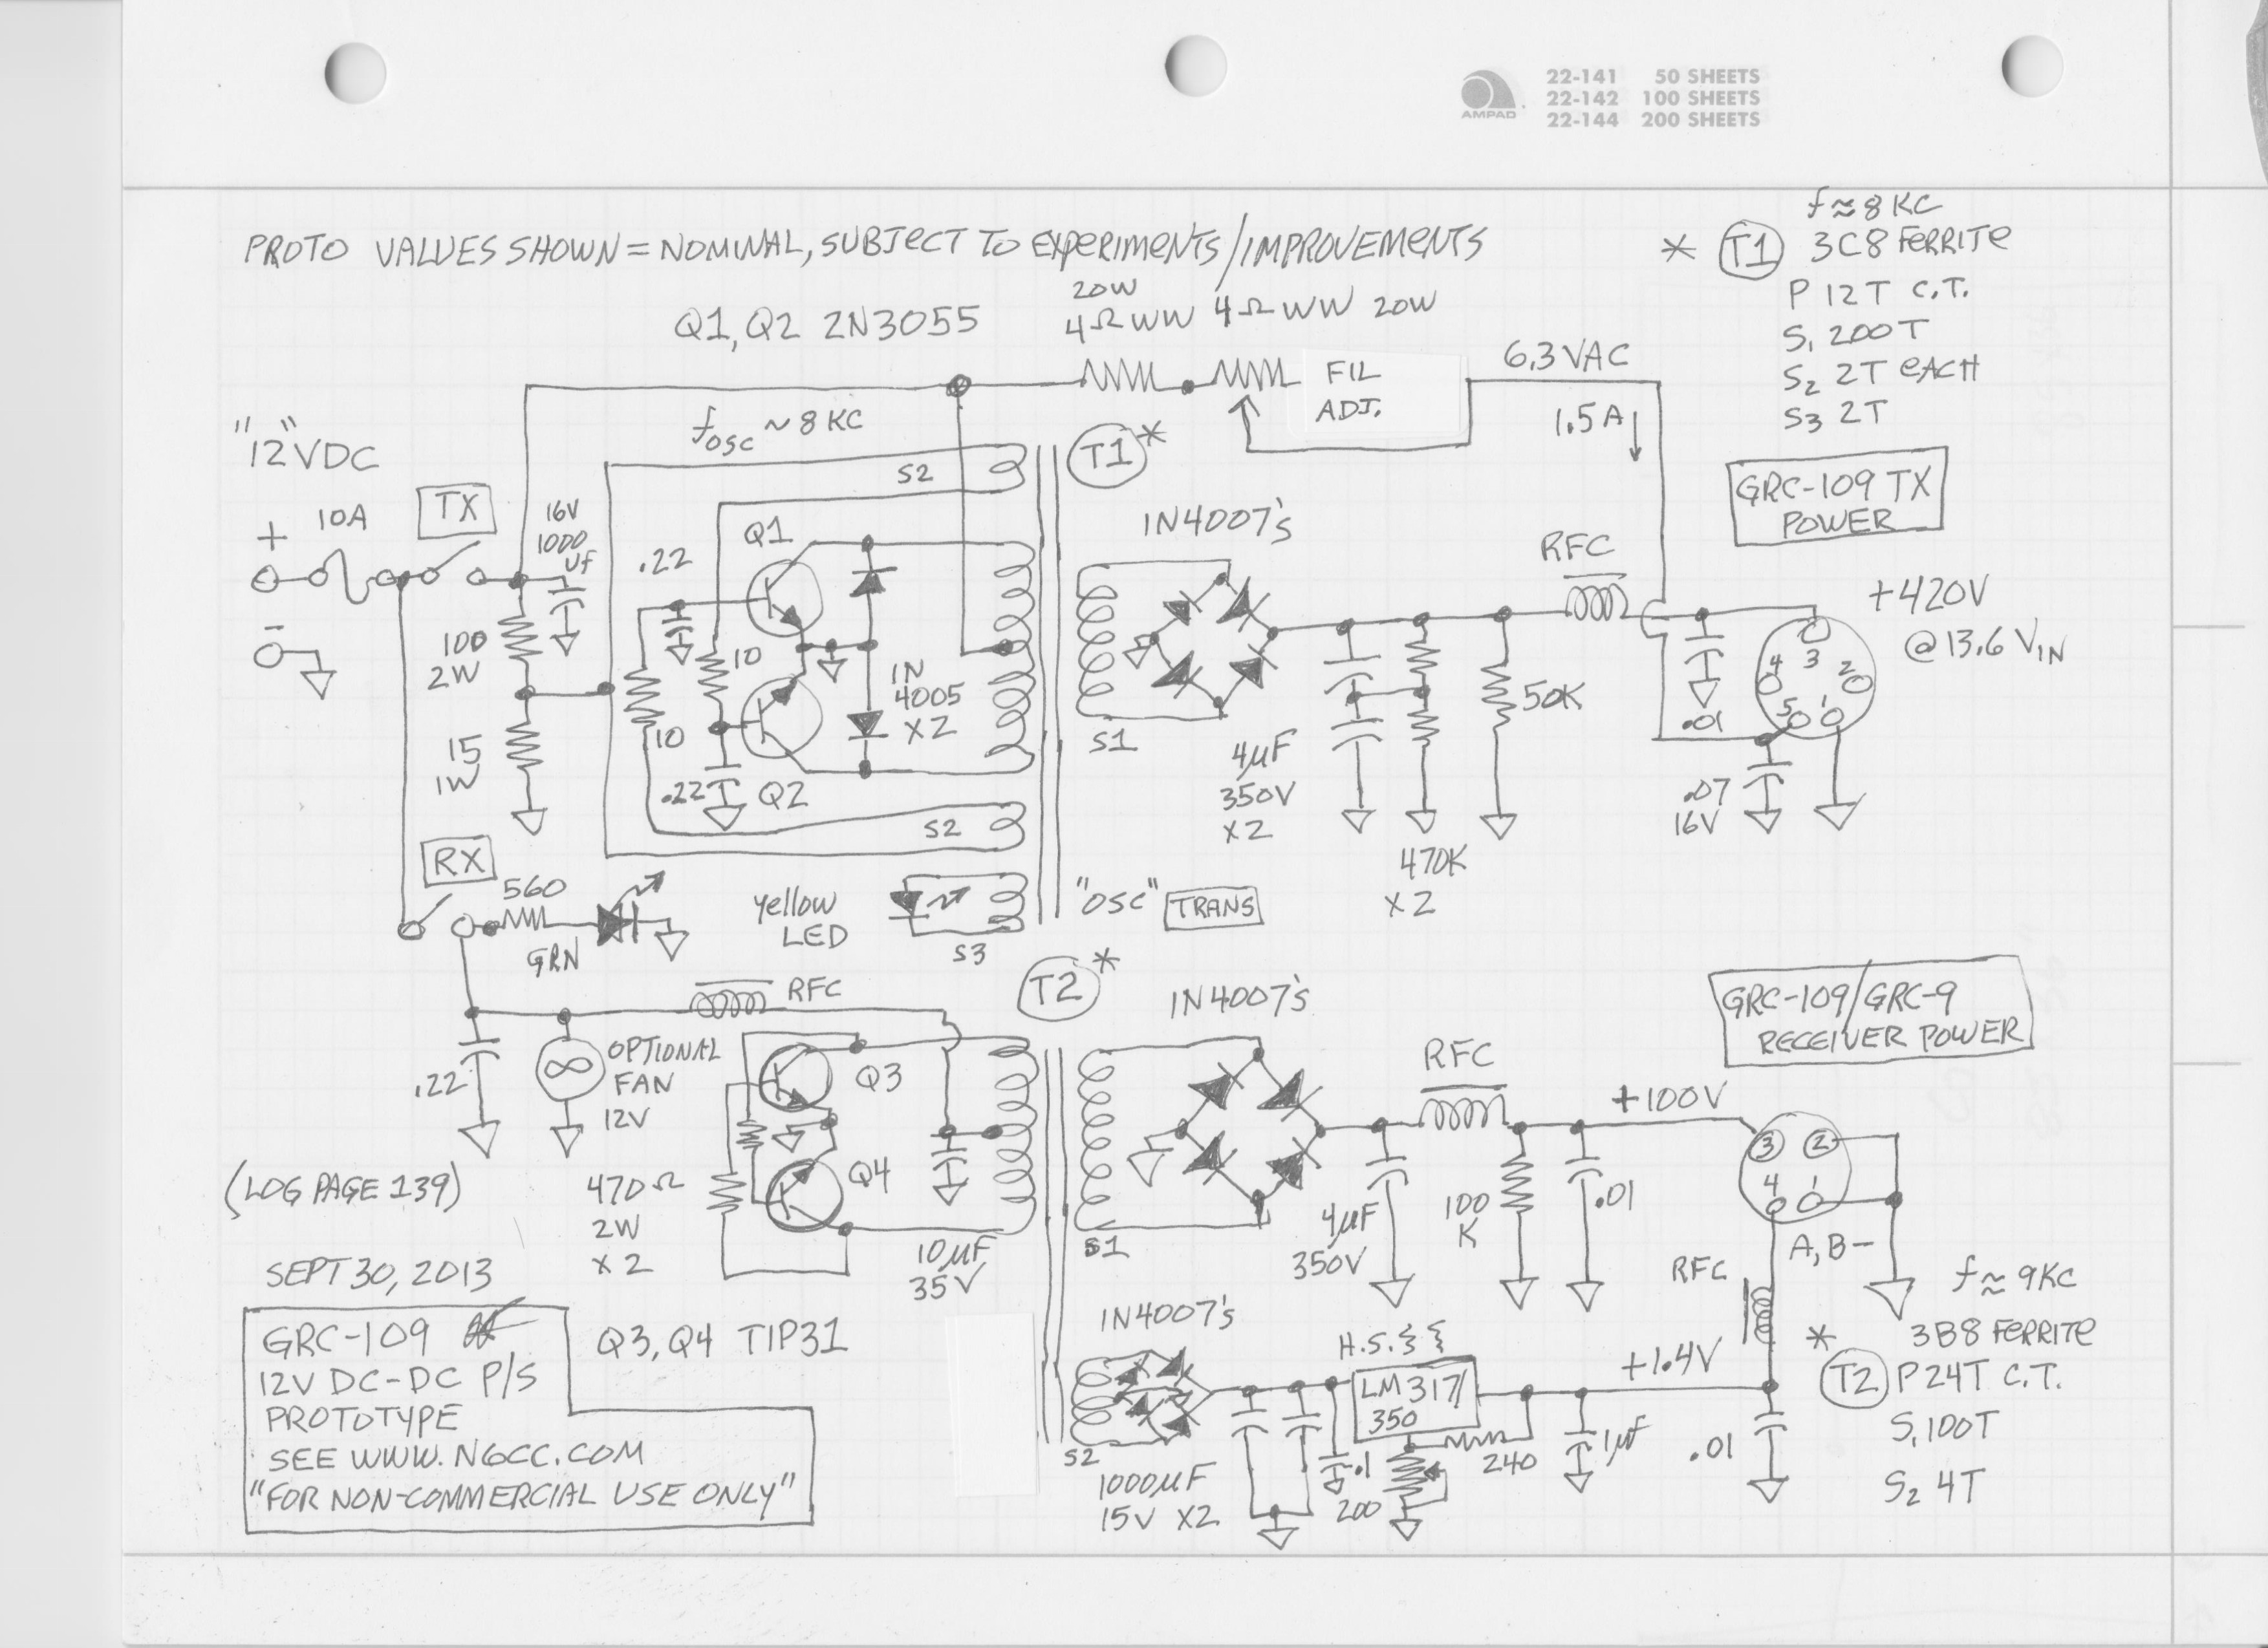 The Cool Meter Is Pegged On This Briggs And Stratton 65 Hp Engine Diagram Mia Blog Grc 109 12 Volt Dc Power Supply N6cc